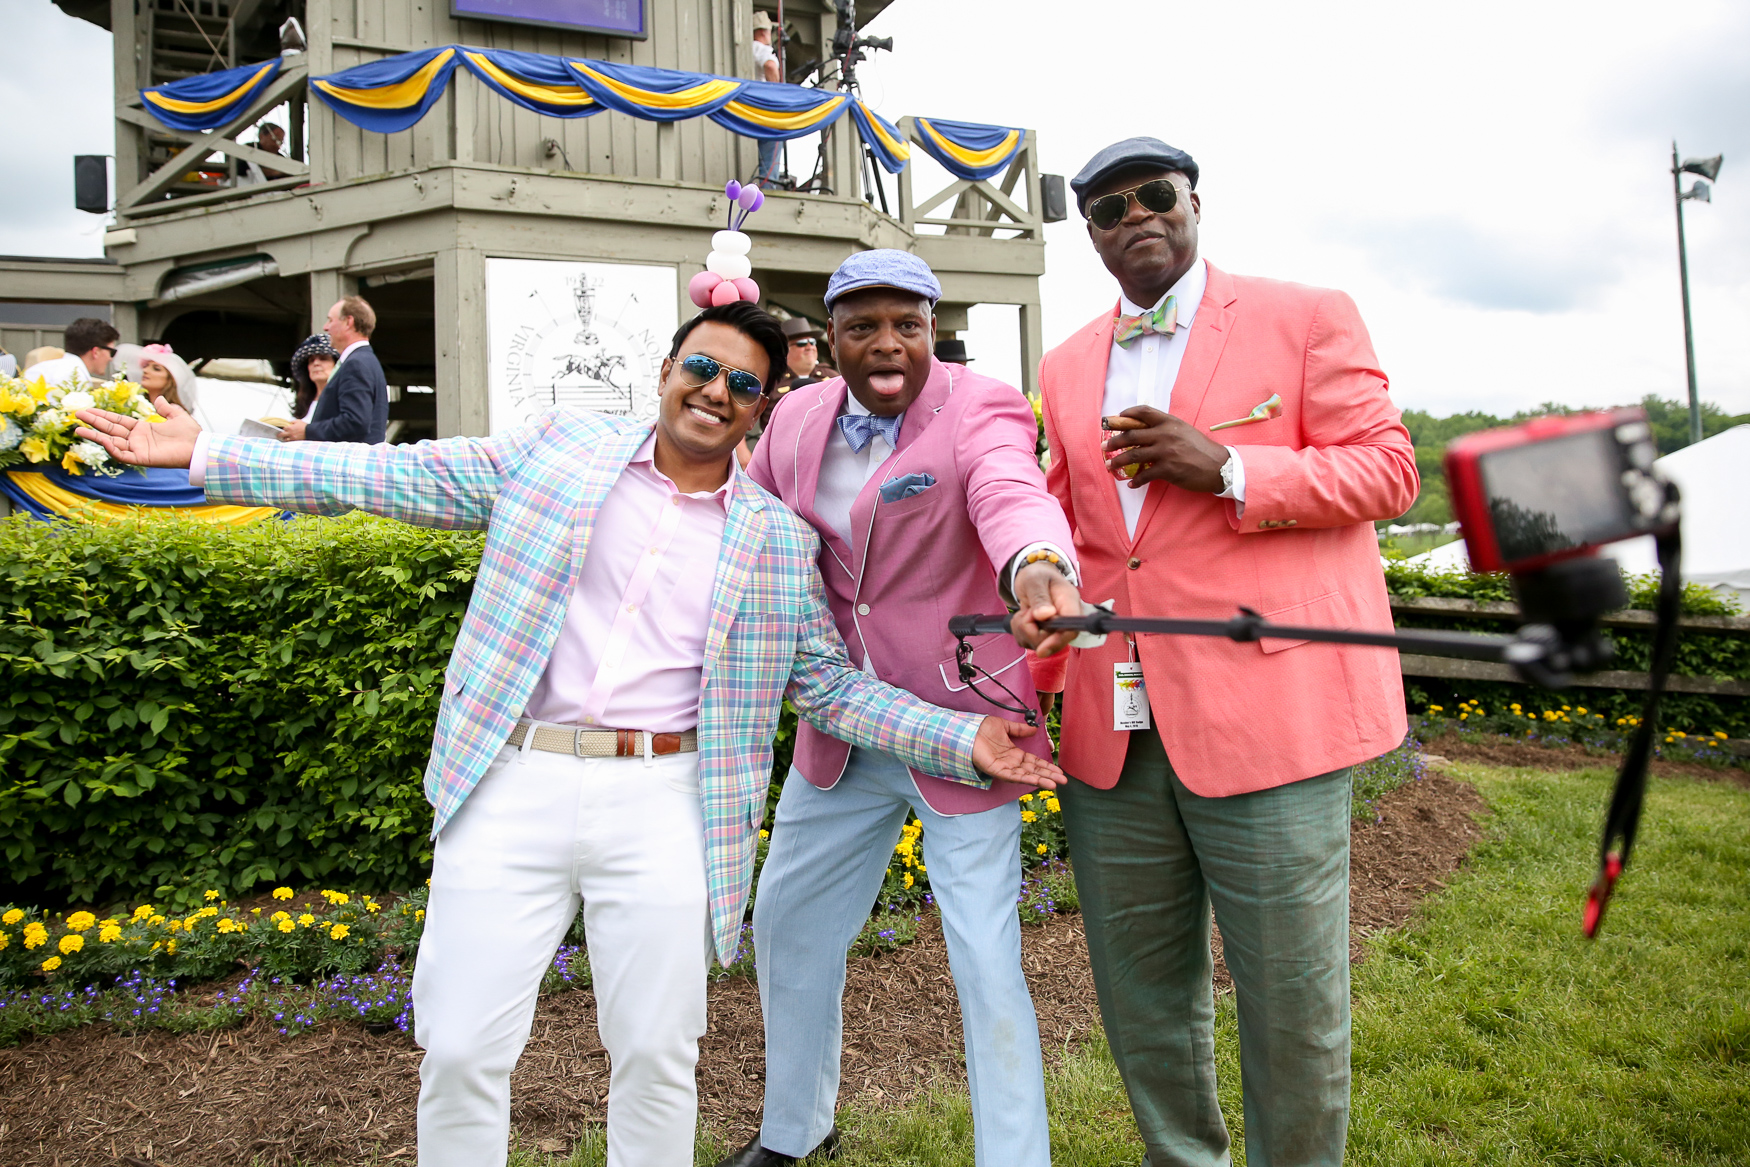 Men can get in on the trend too! These guys were contestants for the best dressed competition at Gold Cup.{ }(Amanda Andrade-Rhoades/DC Refined)